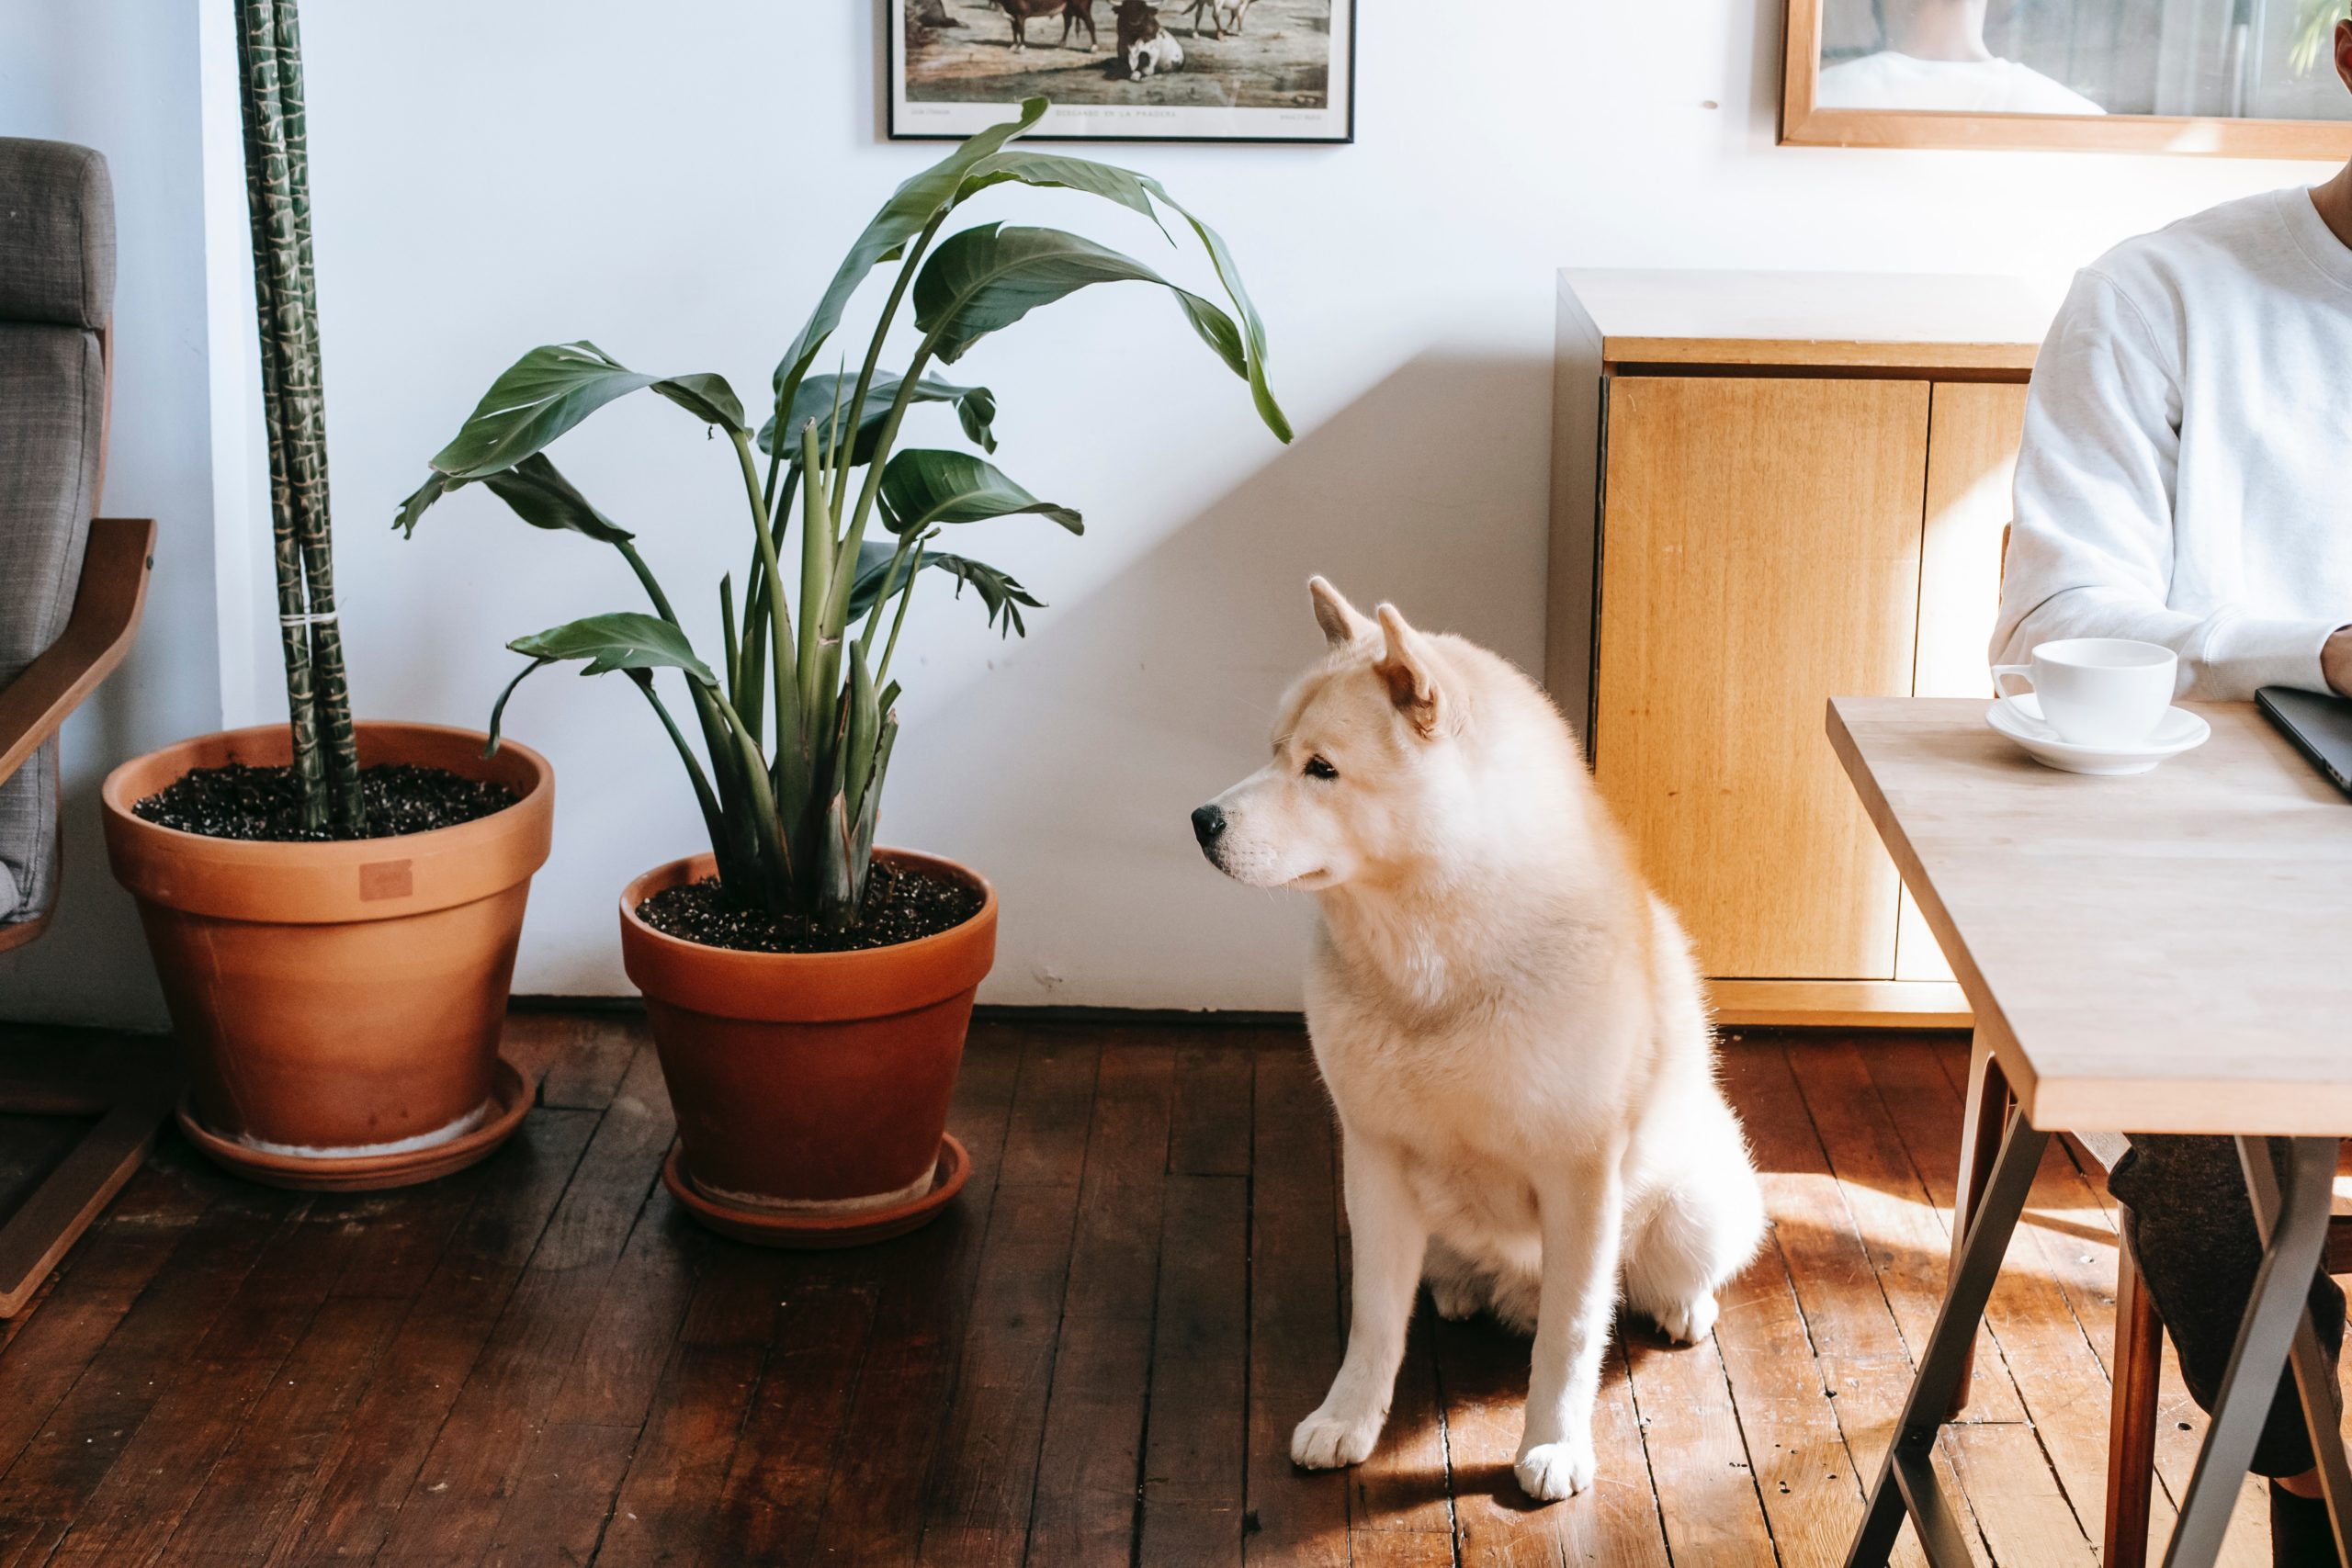 Plants Toxic to Dogs You Should Avoid Having in Your Home